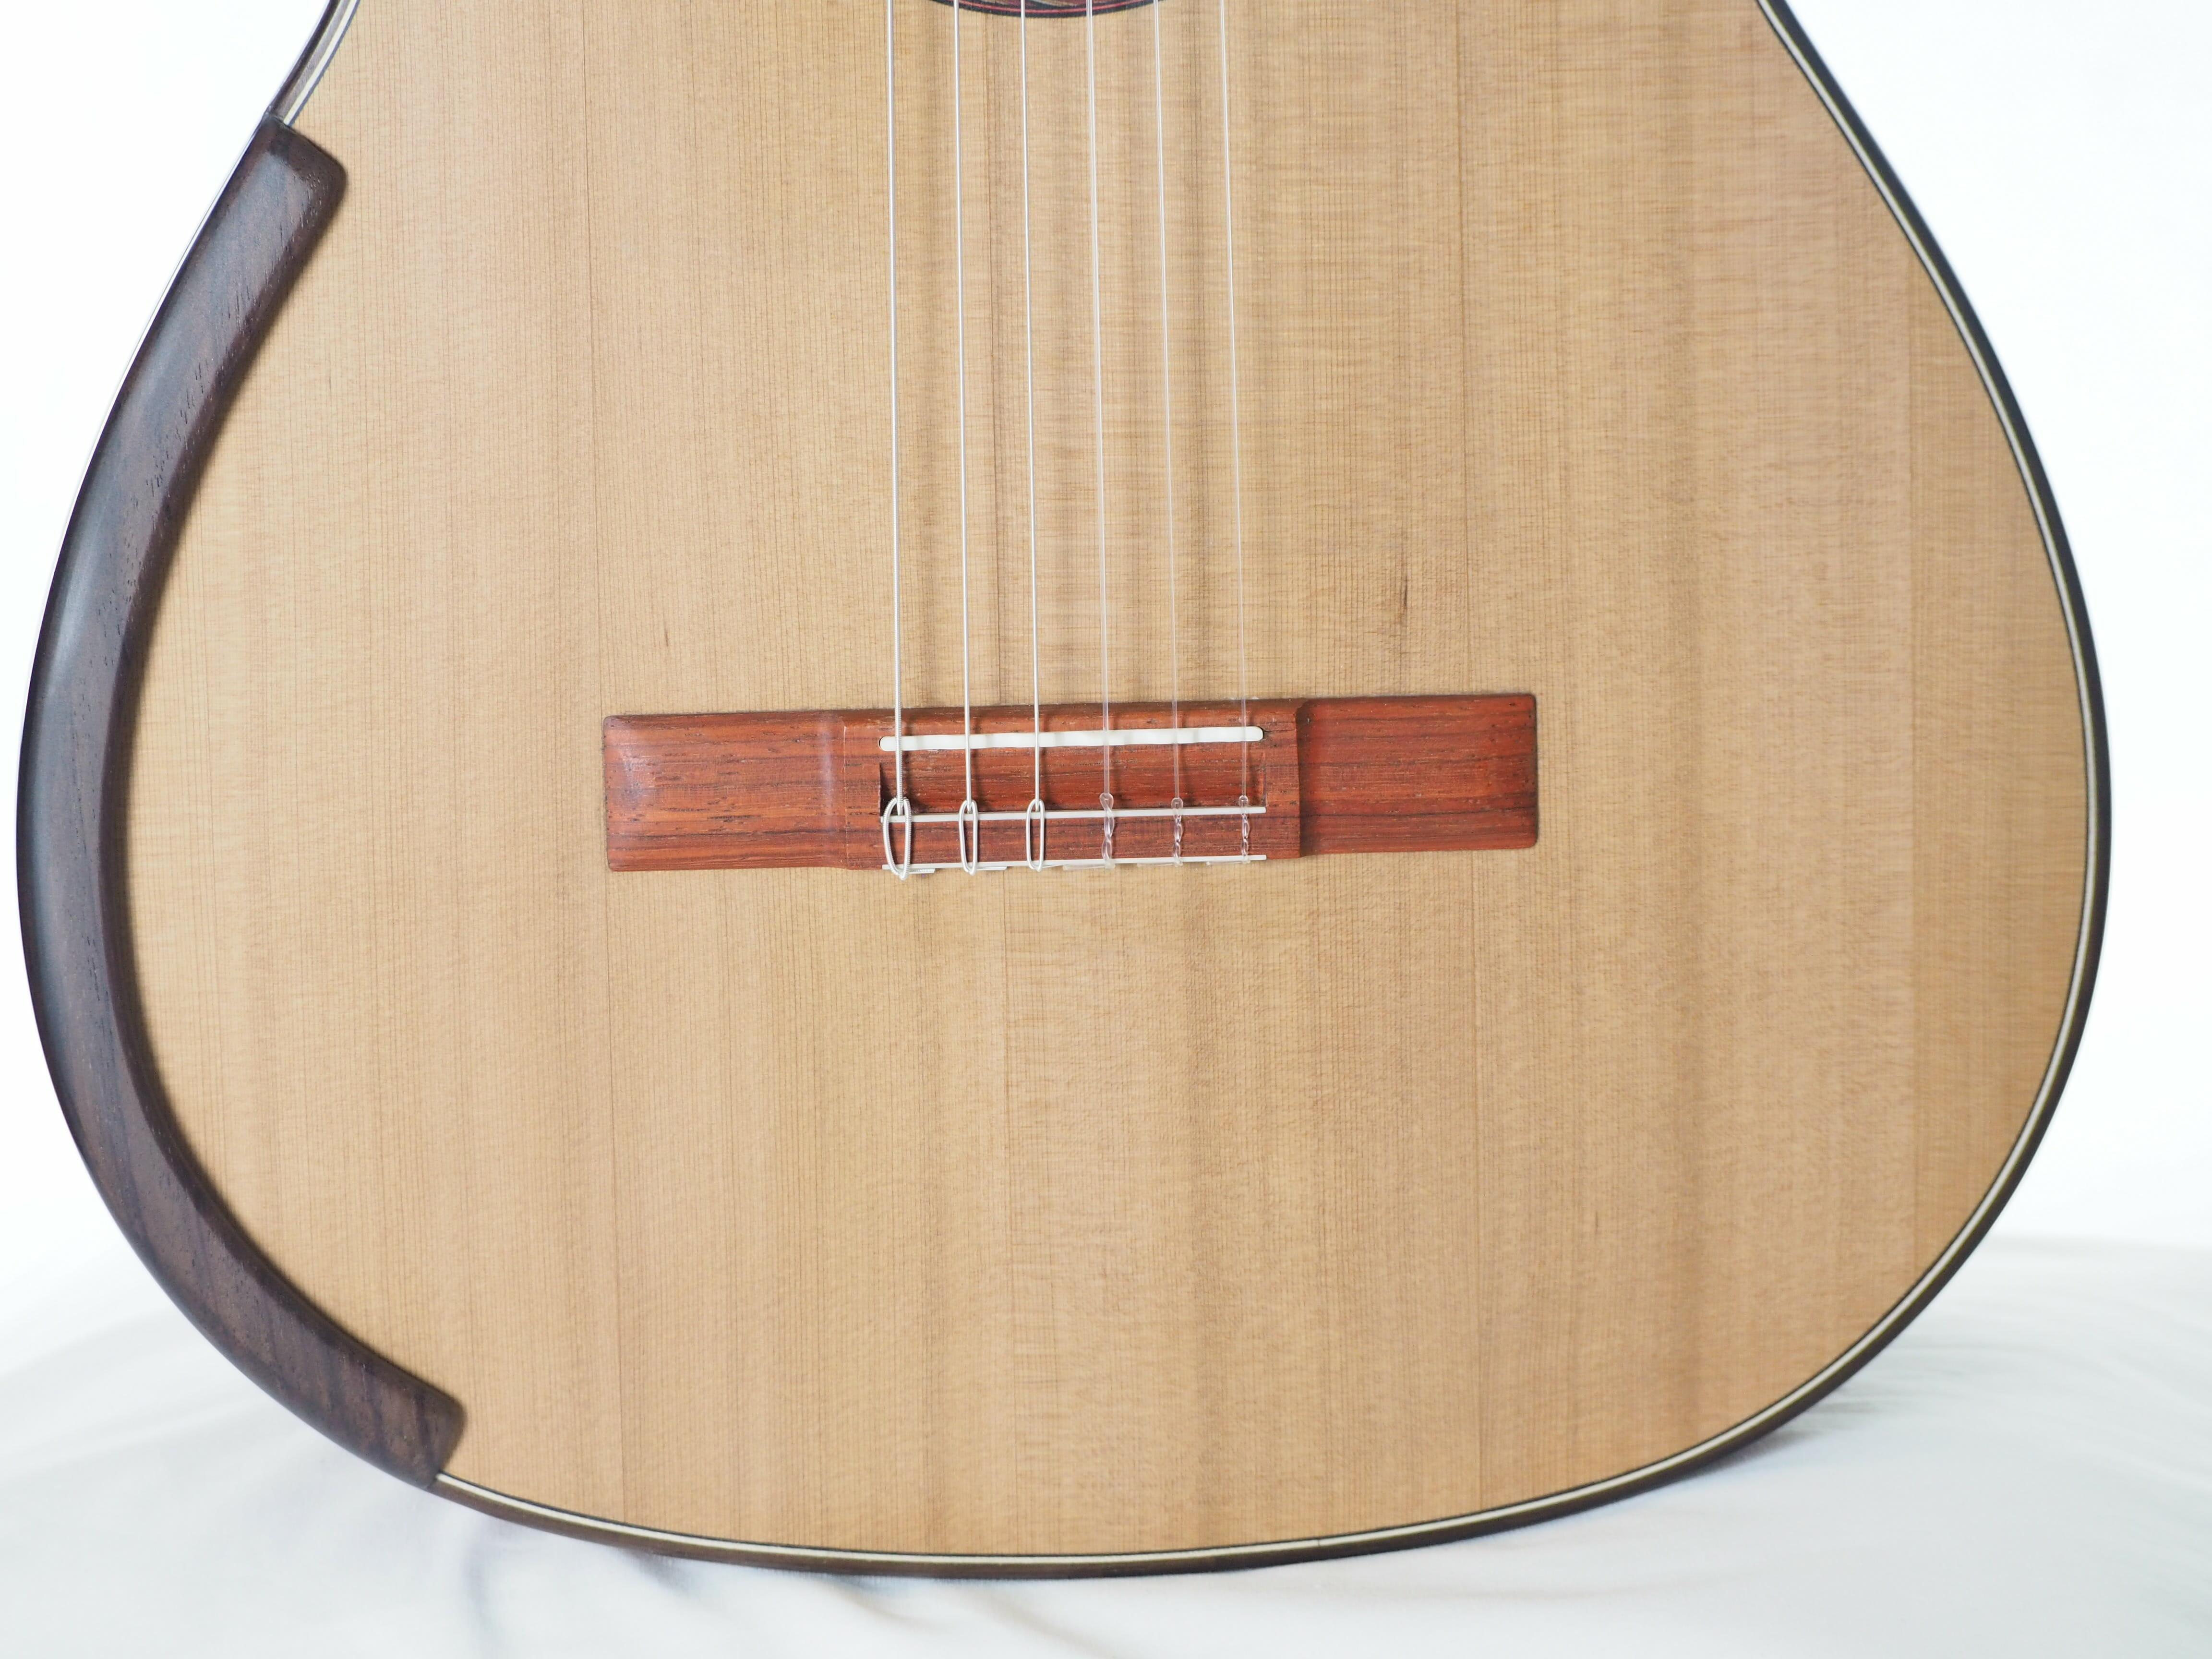 Greg Smallman & sons guitare classique de luthier barrage lattice